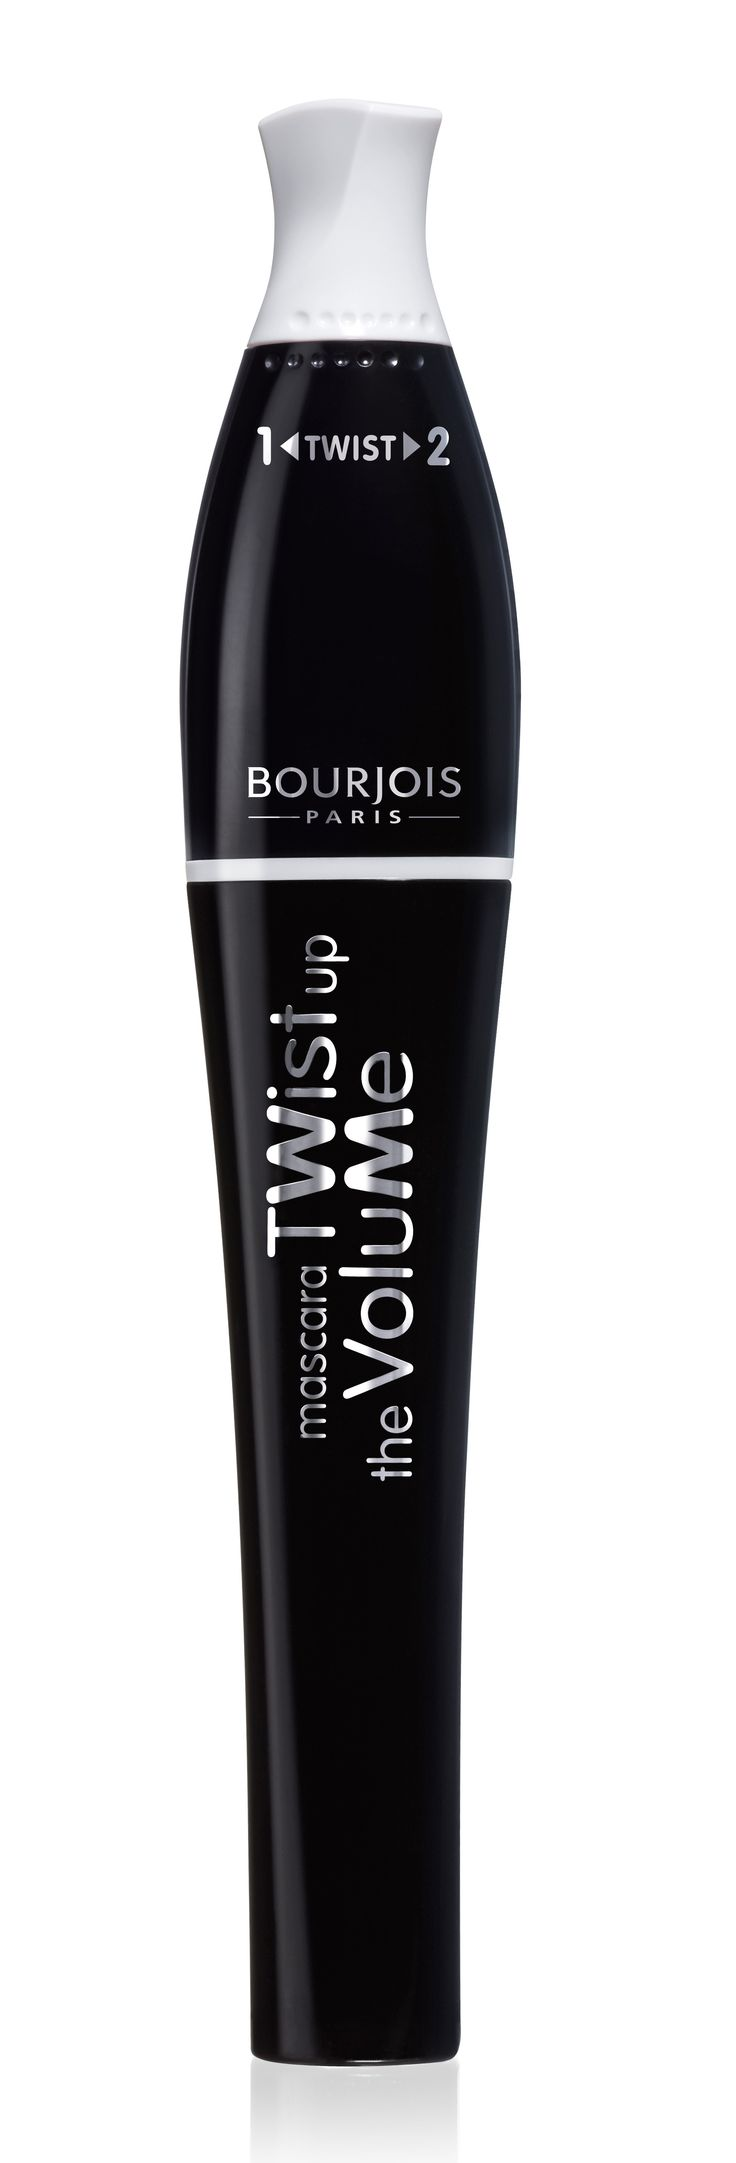 Bourjois Twist Up The Volume Mascara